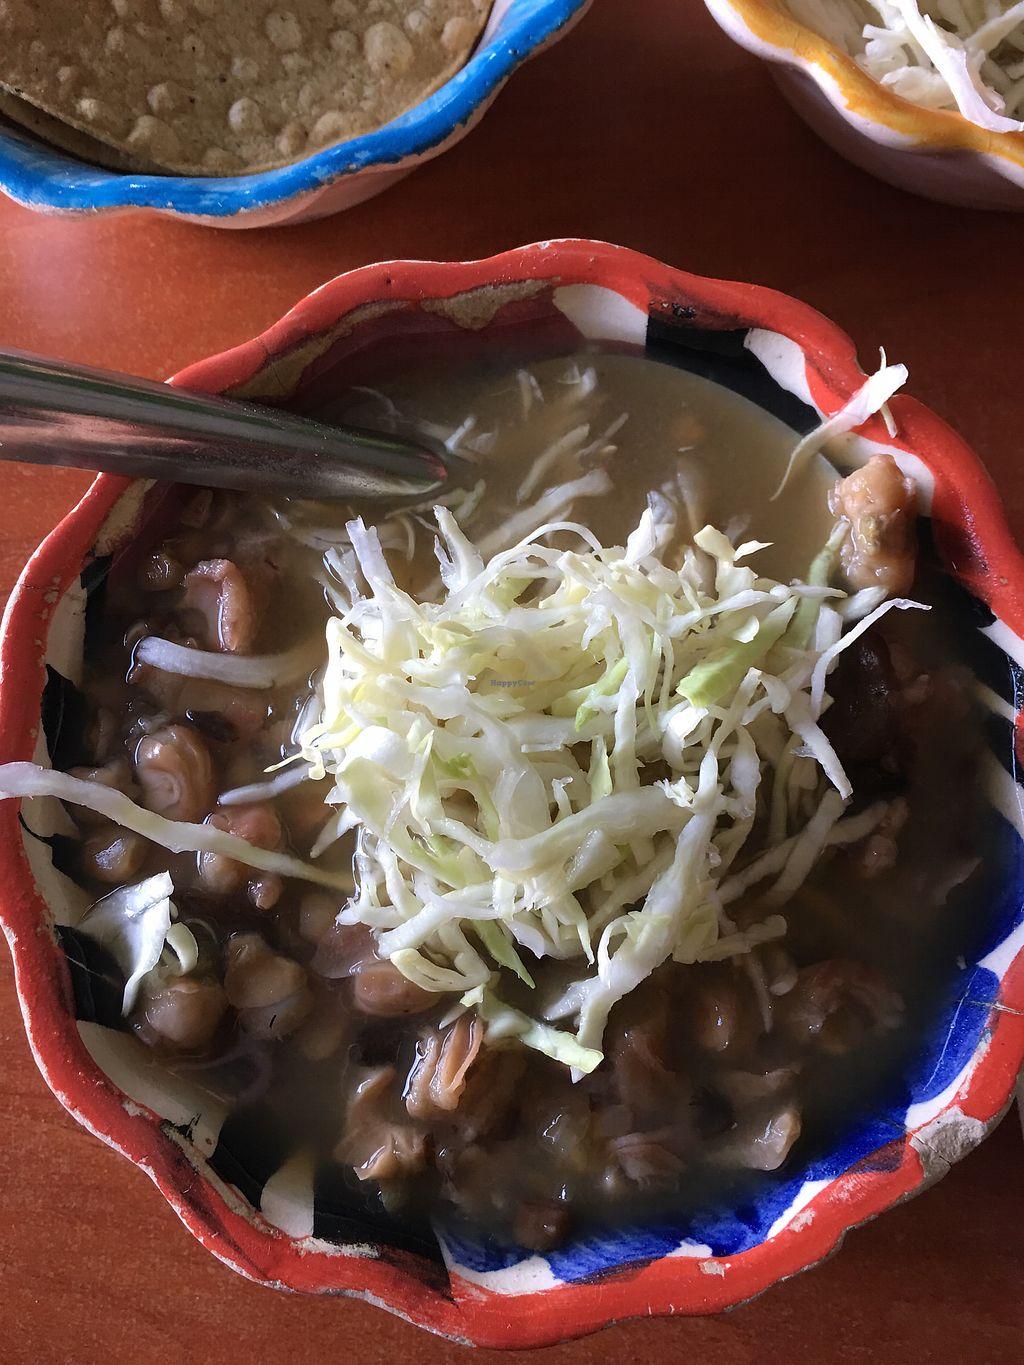 "Photo of Pozole Vegetariano Tia Ofe  by <a href=""/members/profile/readyourworld"">readyourworld</a> <br/>Vegan pozole <br/> January 12, 2018  - <a href='/contact/abuse/image/67681/345898'>Report</a>"